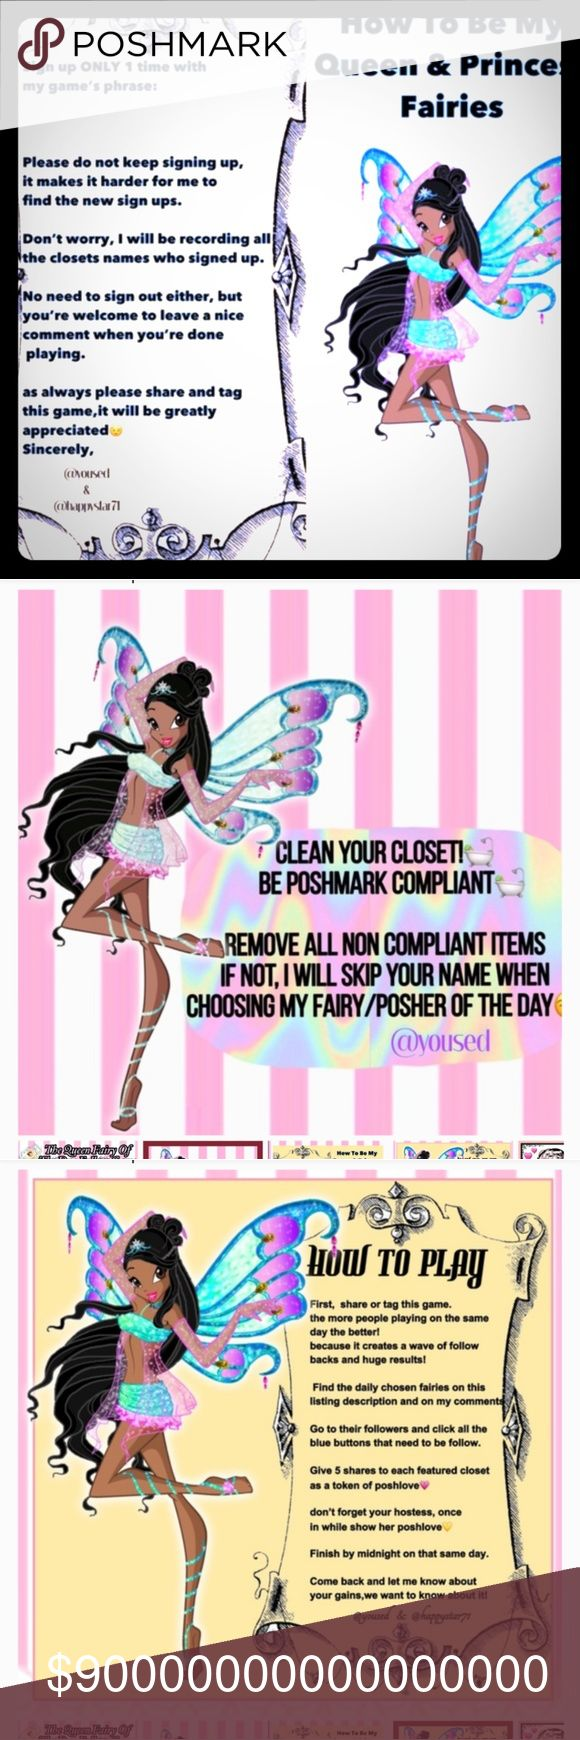 👑Queen or King👑 💥Like  💥Follow 💥Share Congratulations 🎊  It's your SPECIAL Week 💖    Jan 30- Feb 6 , 2018 😍Team's Fairy GodMother  Share Game 5x Give 3 Shares to 👑 @schx4 😍Share 5 items for each  My Queen Fairy   👑 @divineduchess  My King Fairy  👑 @kevinecommers__  My Princess Fairy   👑 @eygpt4   1 Share 5 items for each  2 Tap their followers  3 For miraculous results play games of @happystar71 @amagnoliandc @camps_boutique   @dearcarmen @girltalk123 Queen or King Fairy Other